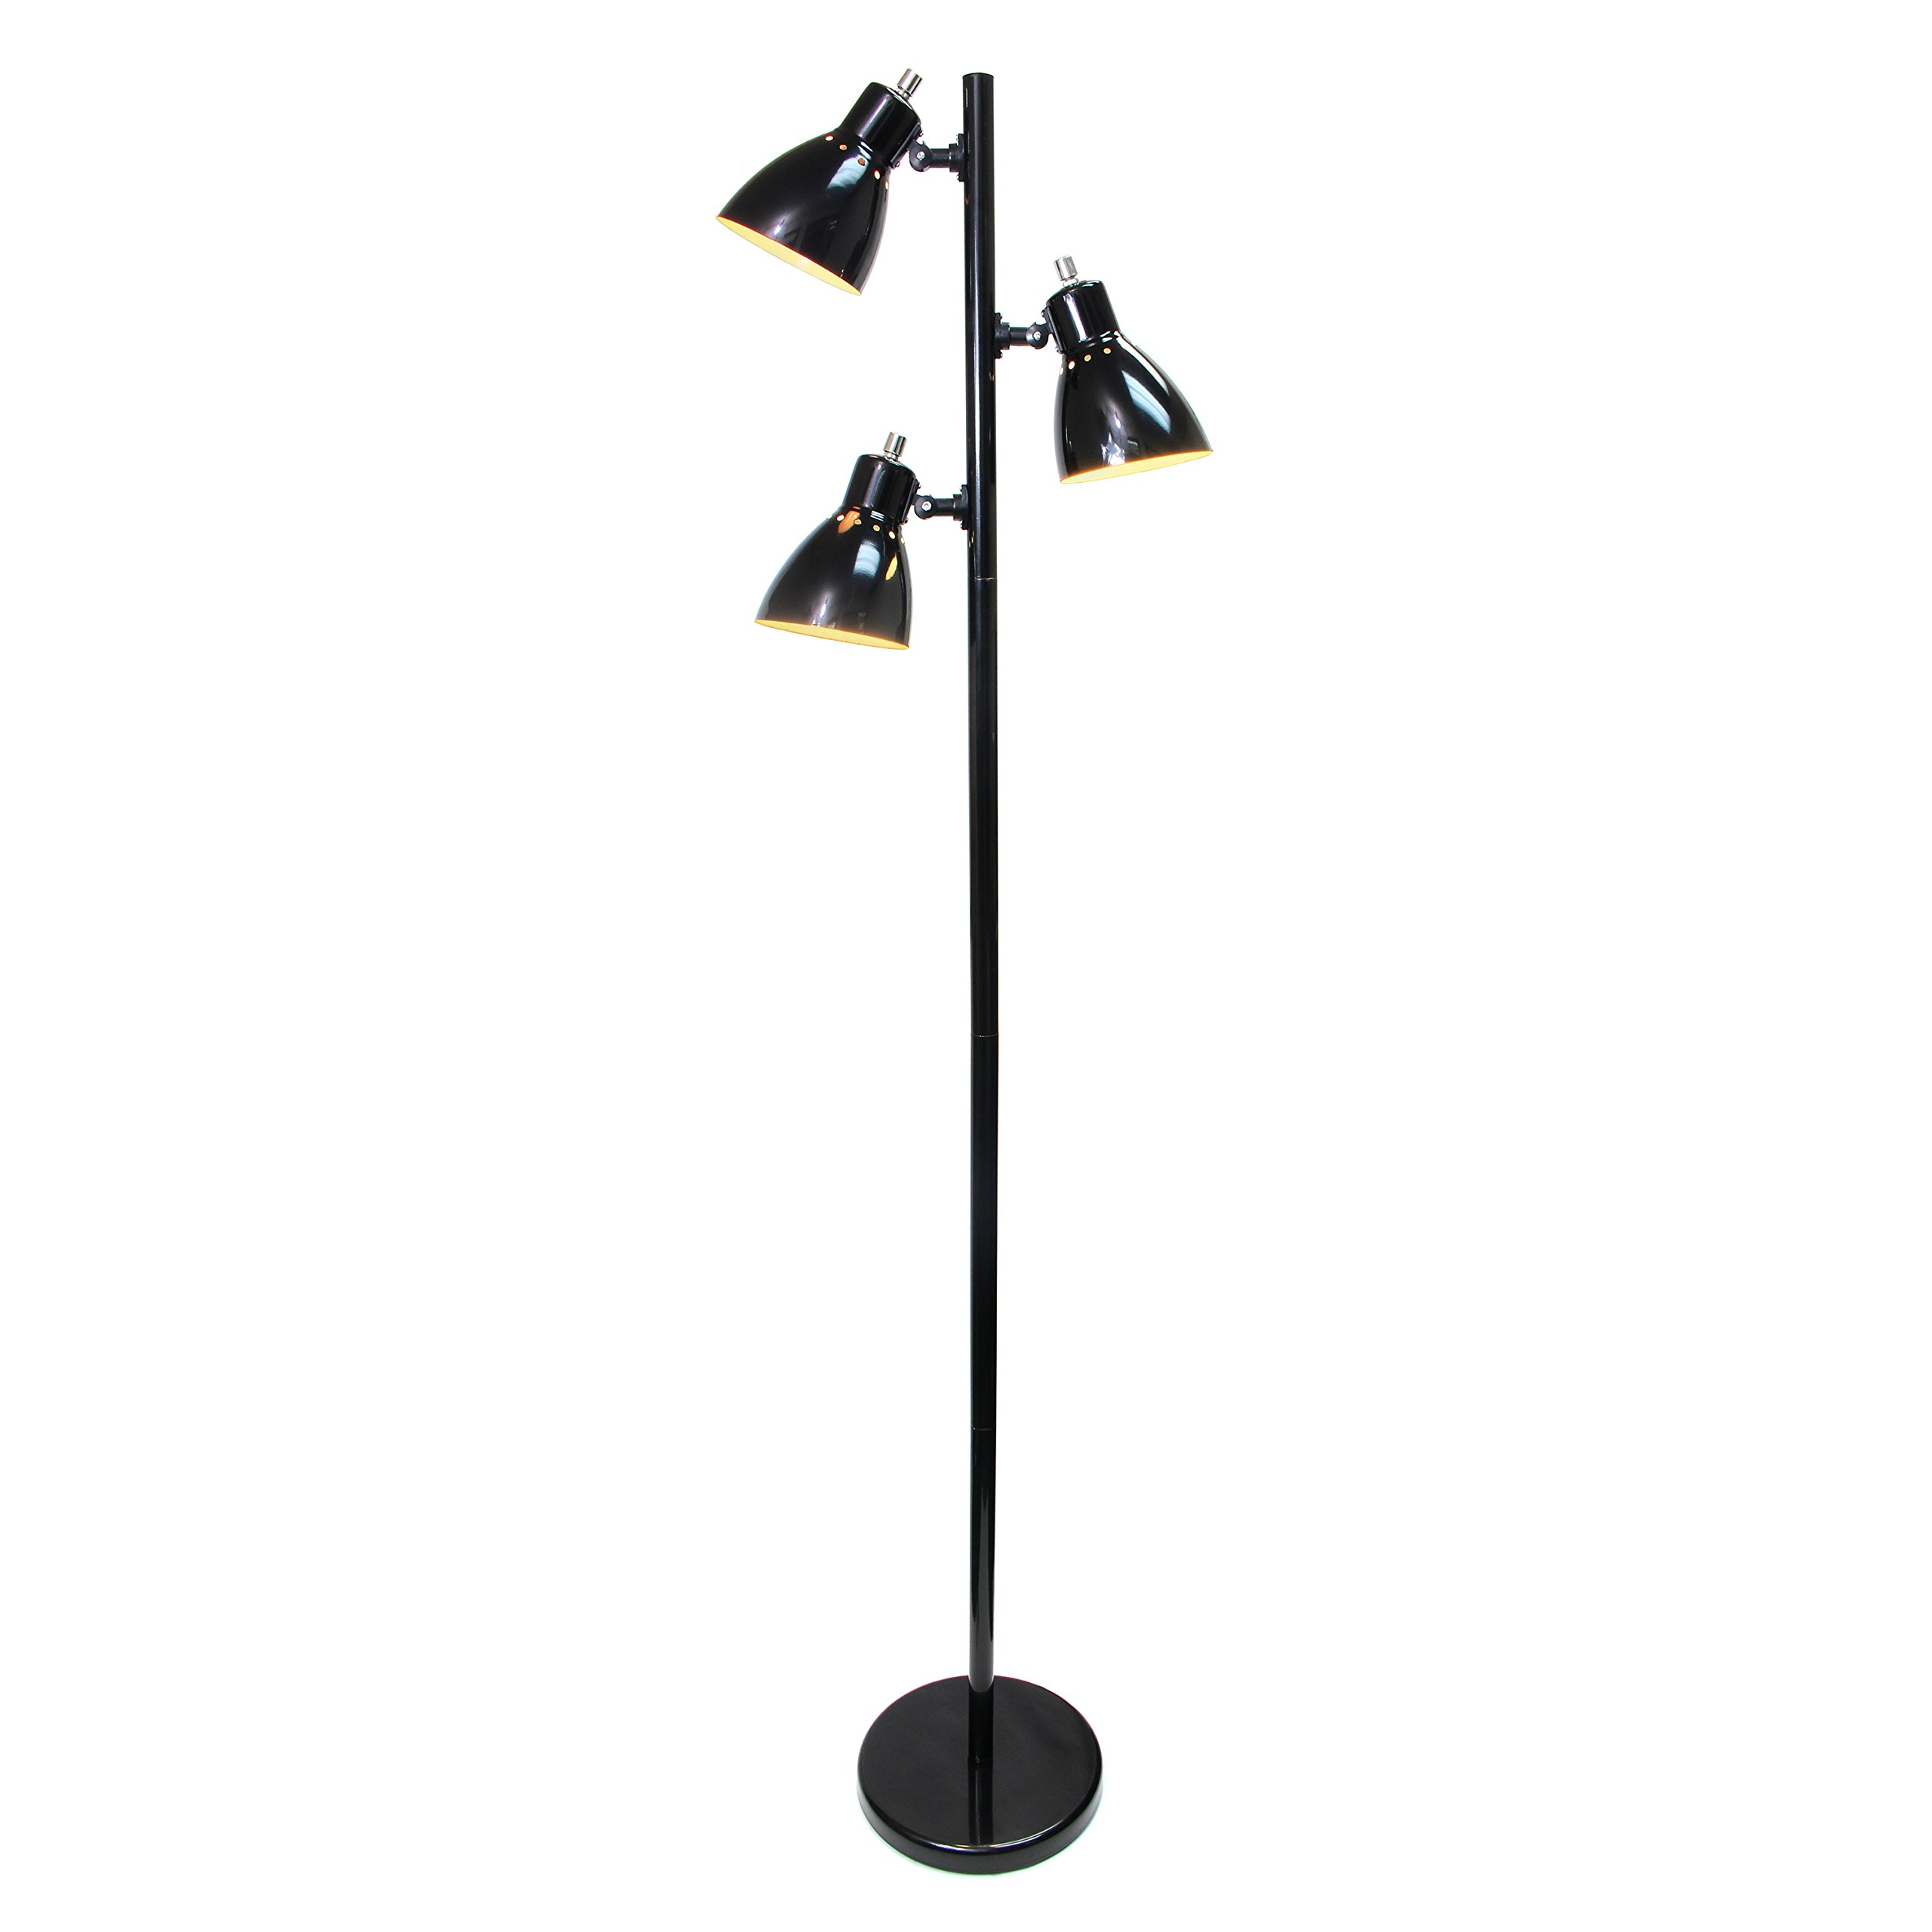 Simple Designs Home LF2007-BLK Simple Designs Metal 3-Light Tree Floor Lamp, Black Finish, by Simple Designs Home